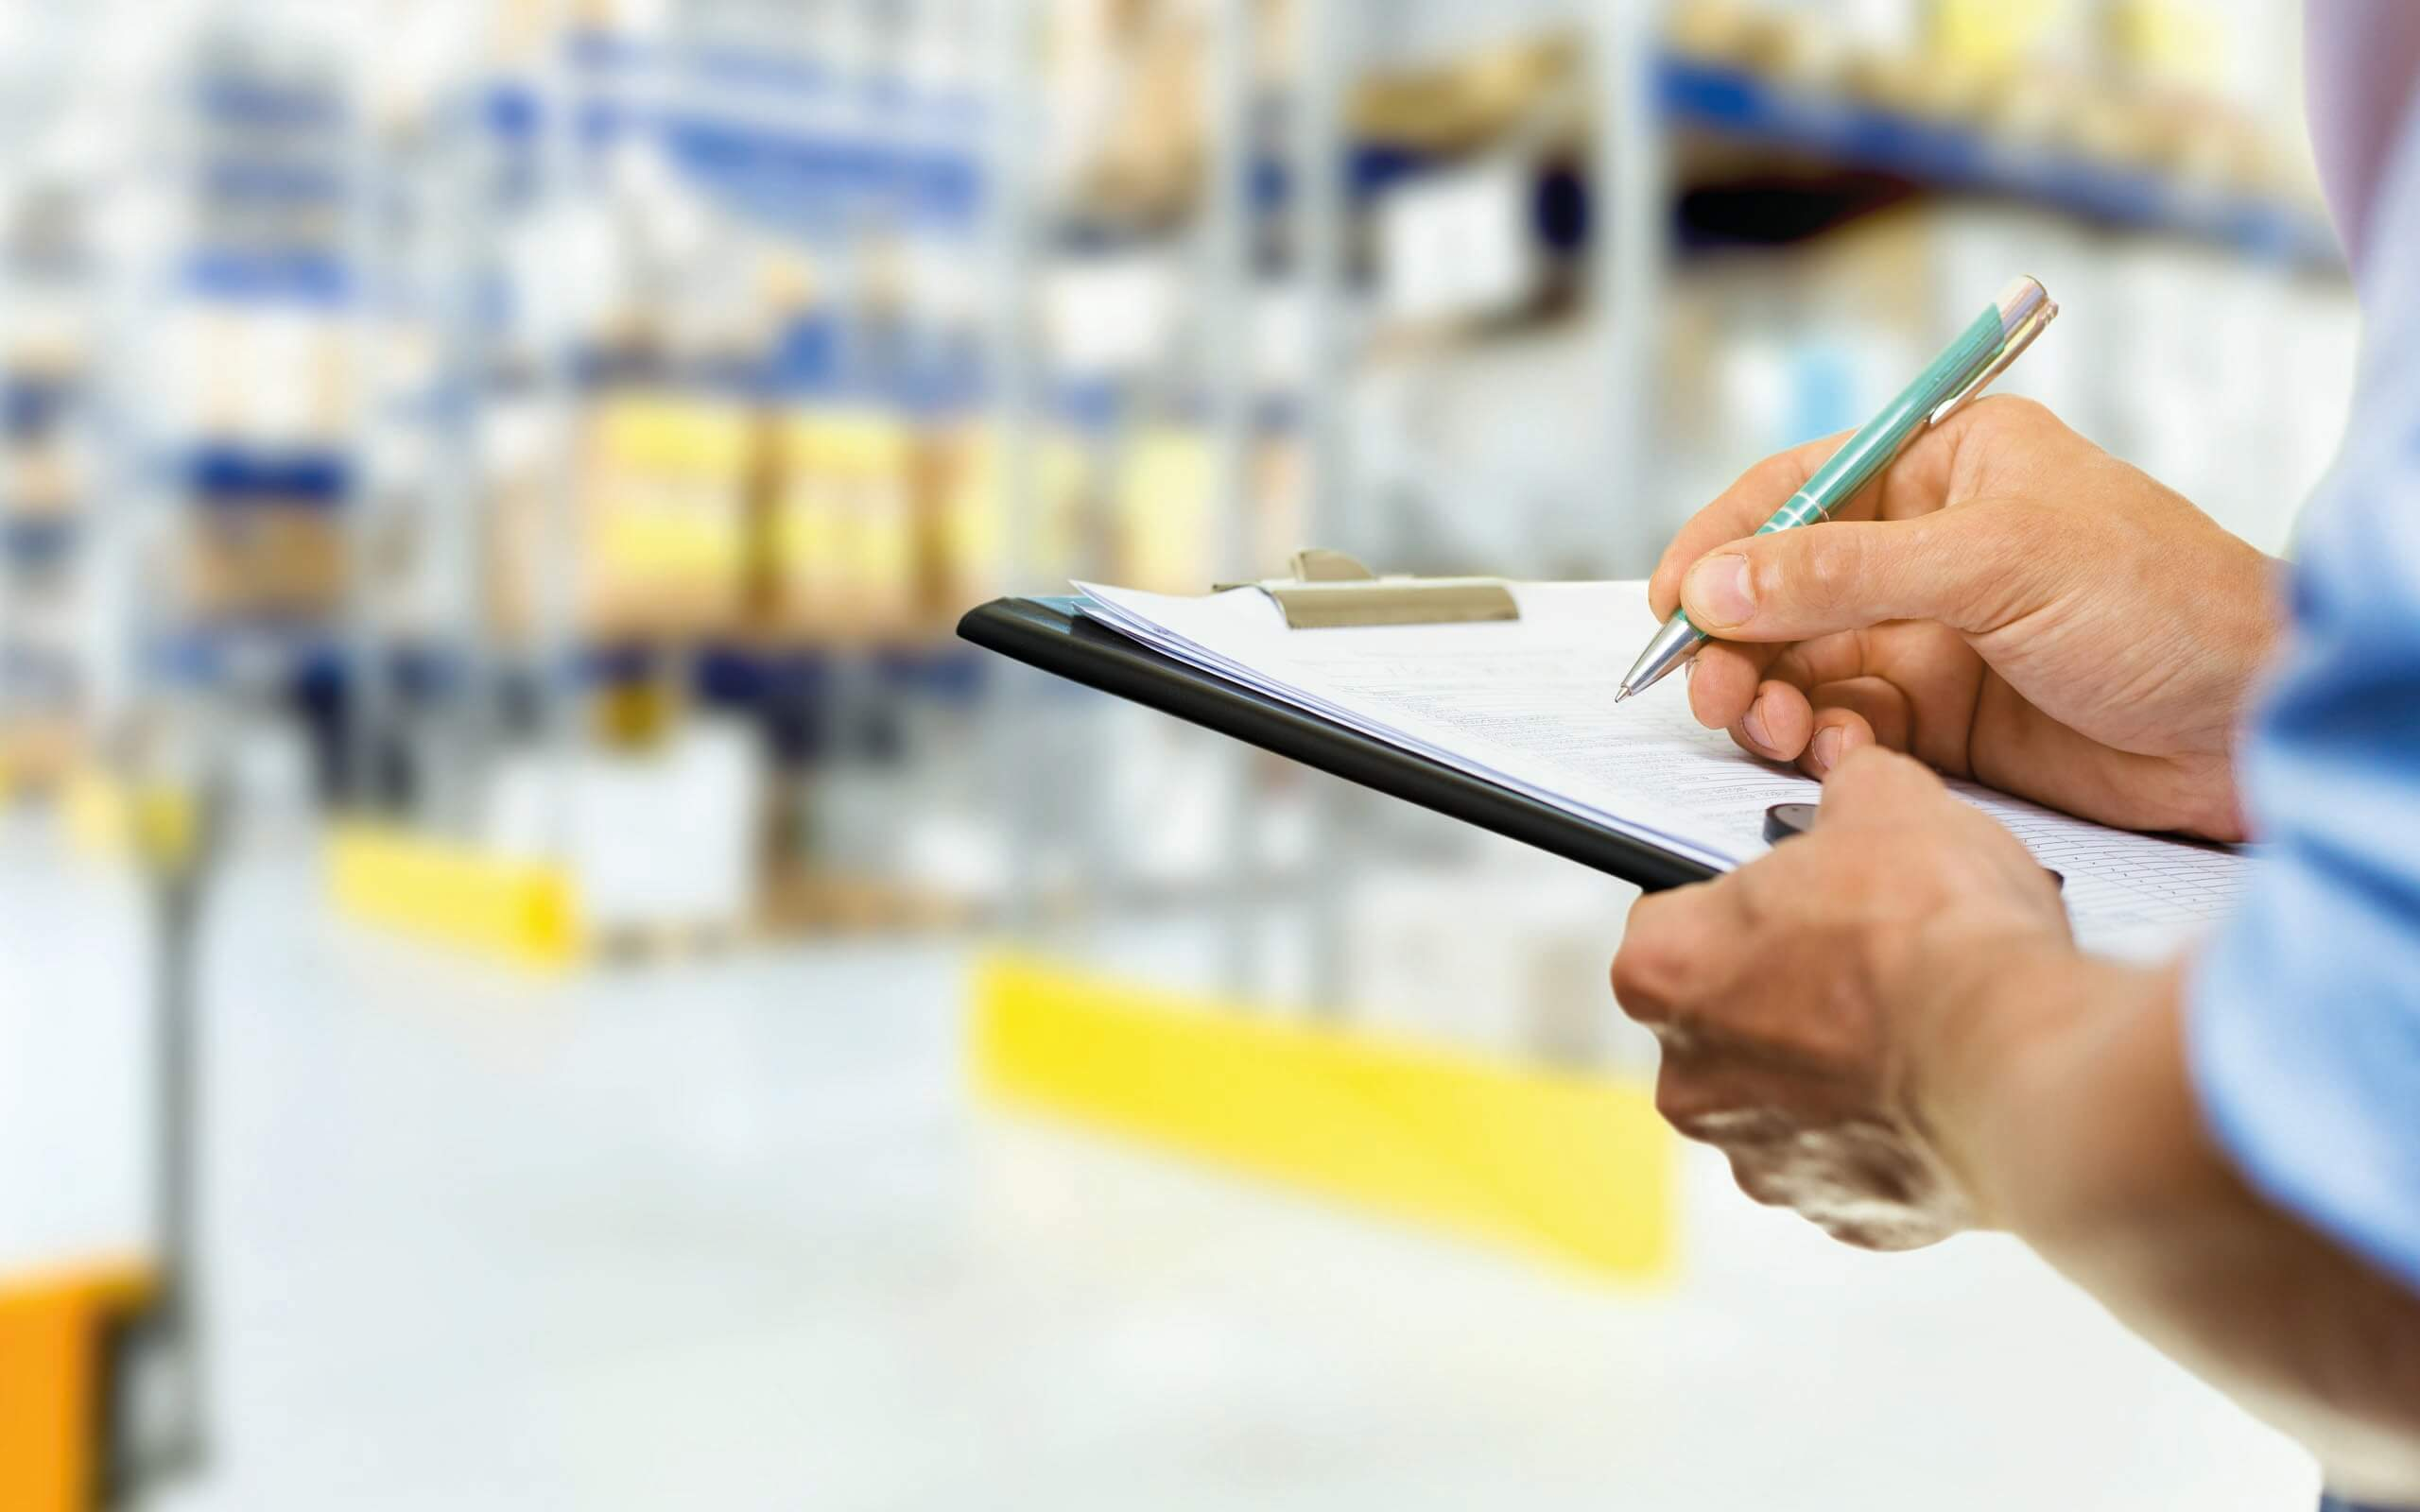 Warehouse manager checks stock and safety in large warehouse